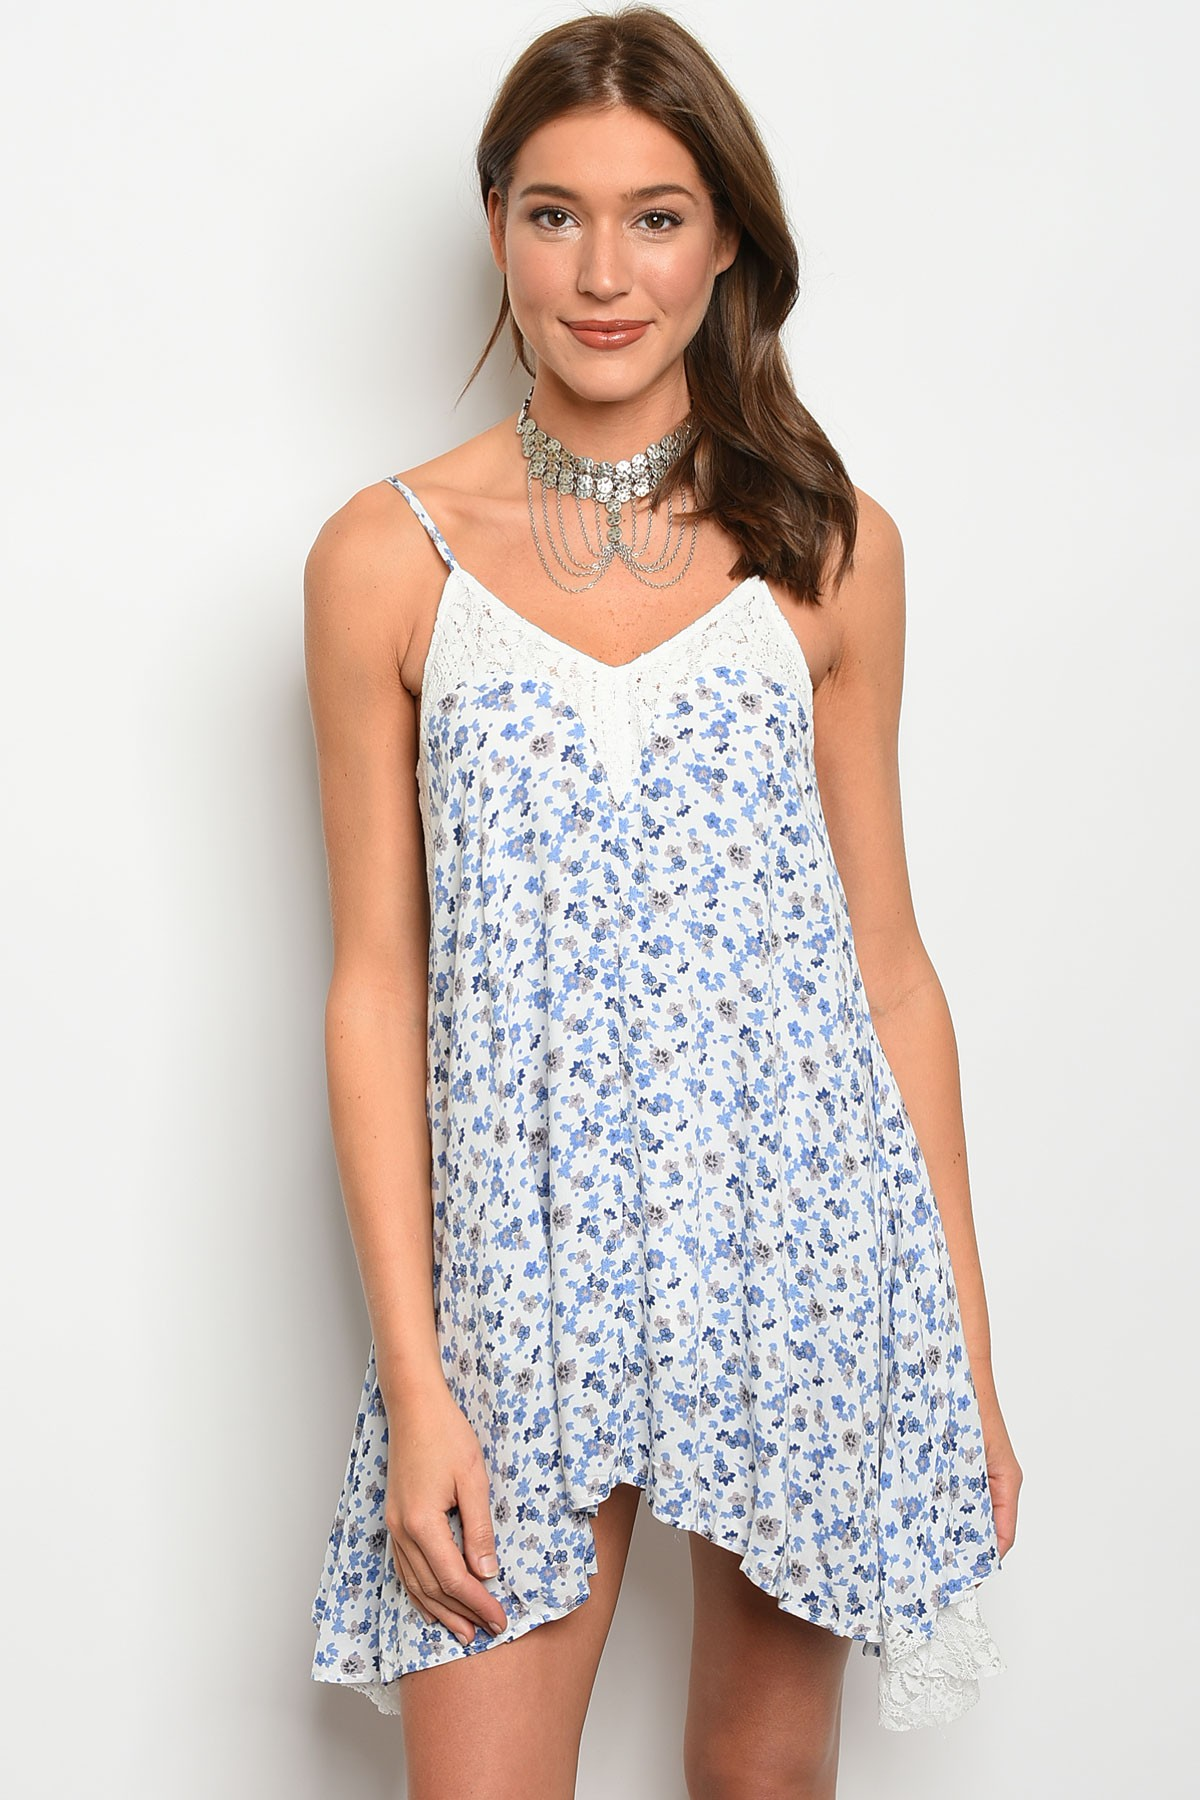 S19 3 1 d10029 white with blue flower dress 3 2 1 izmirmasajfo